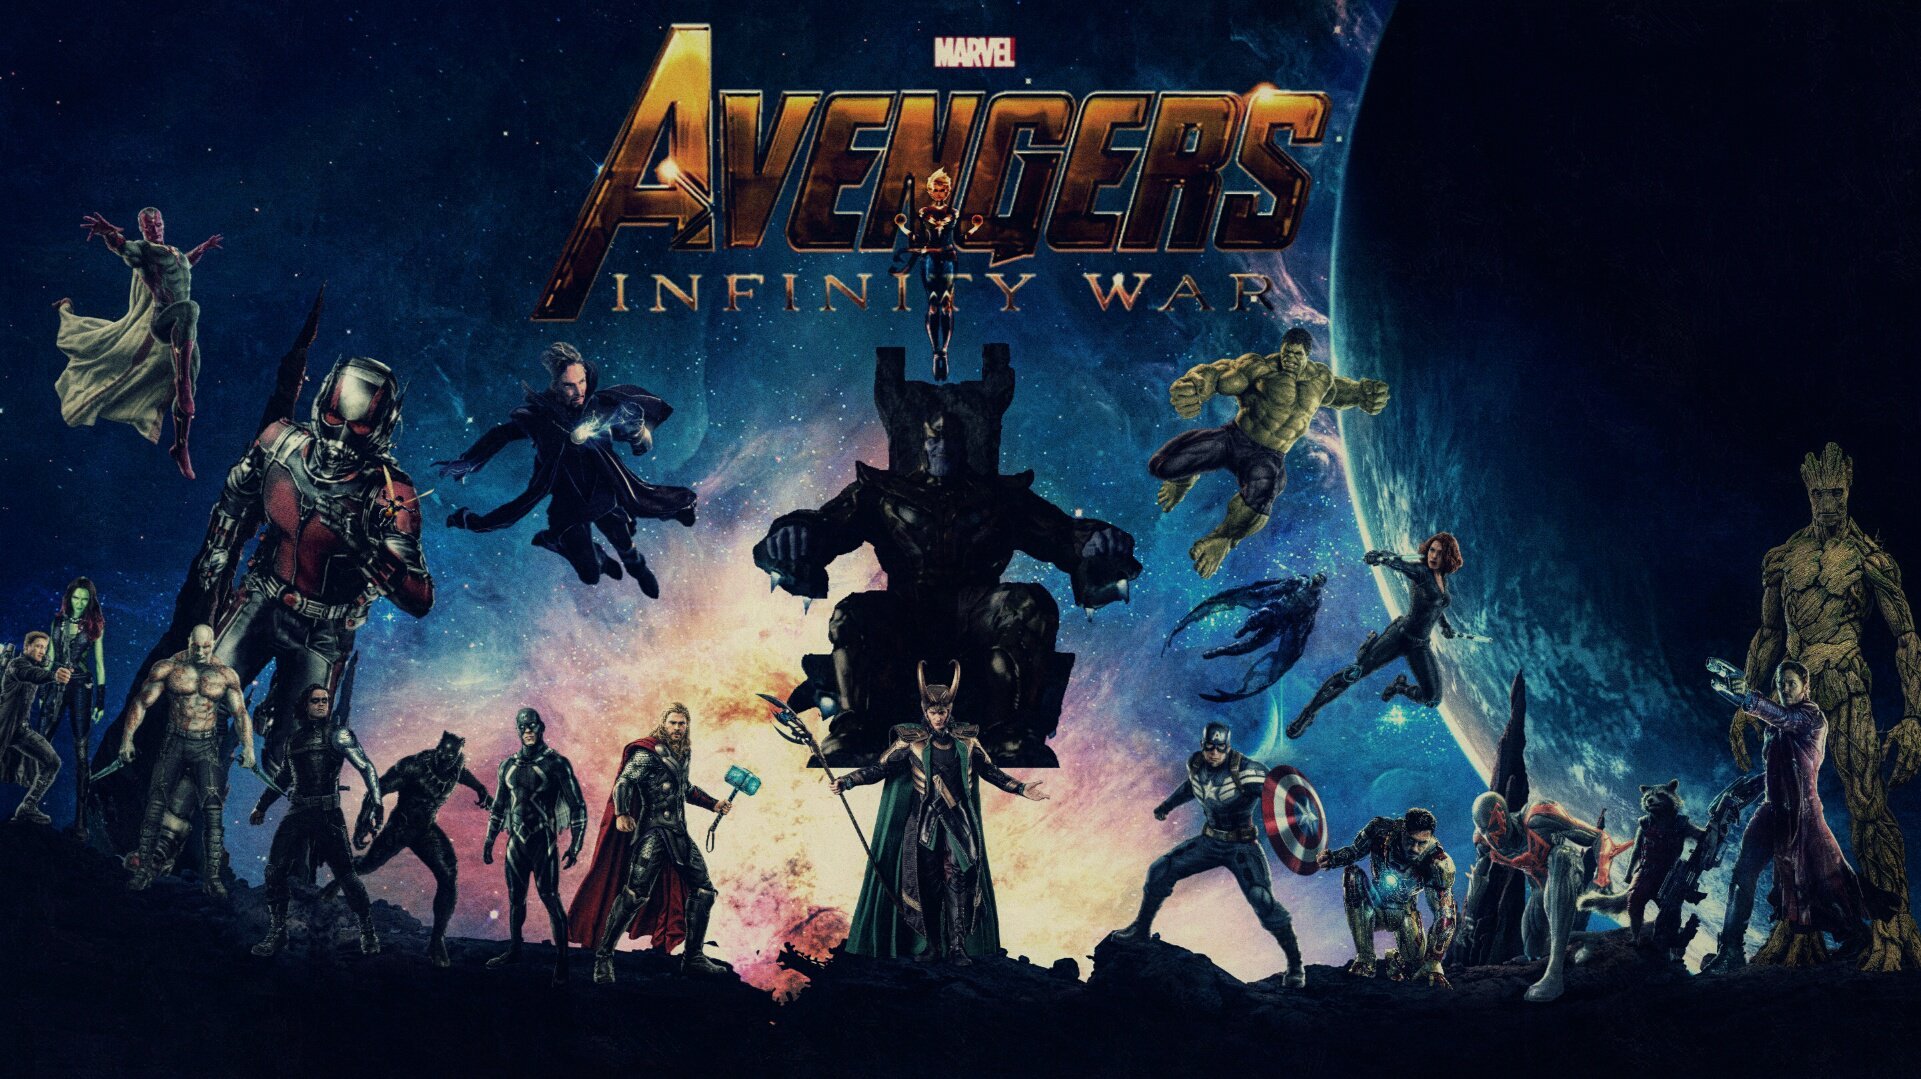 Avengers infinity war ... Avengers and Guardians of Galaxy - heroes and evil characters